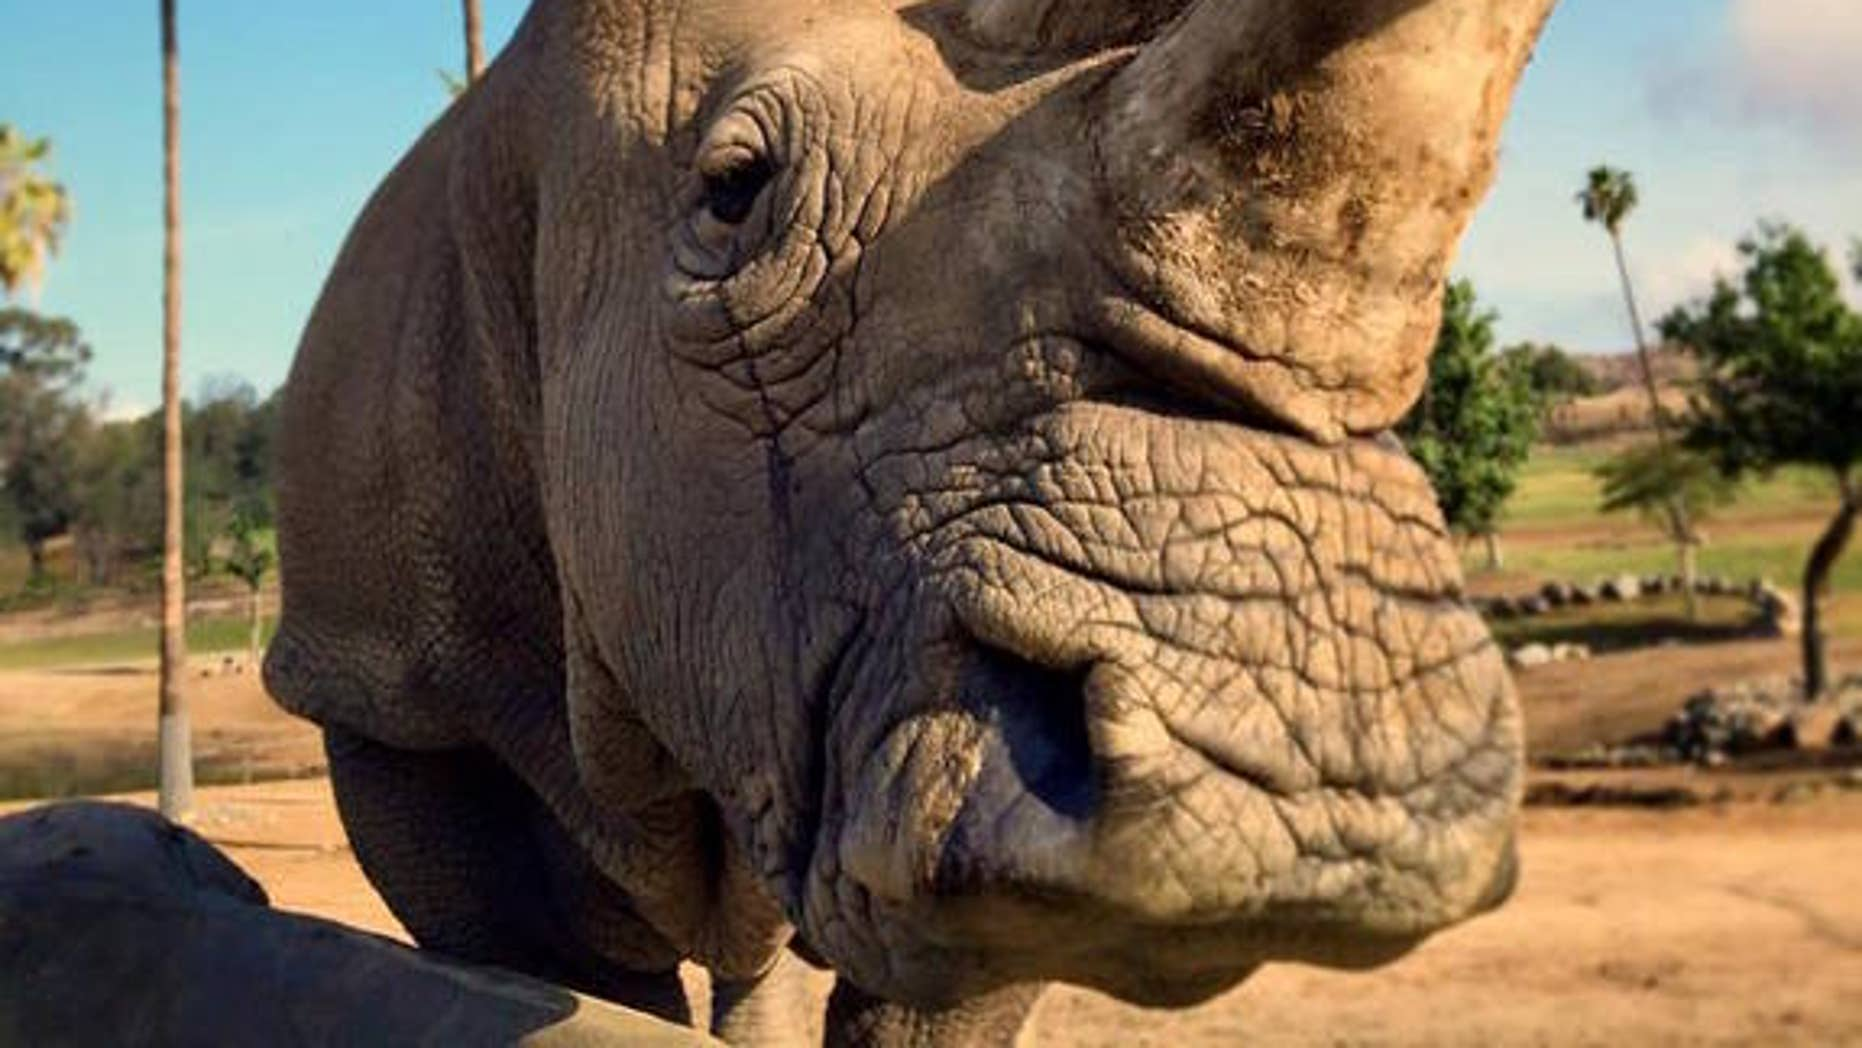 Nola, one of the last northern white rhinos on Earth, died this week.